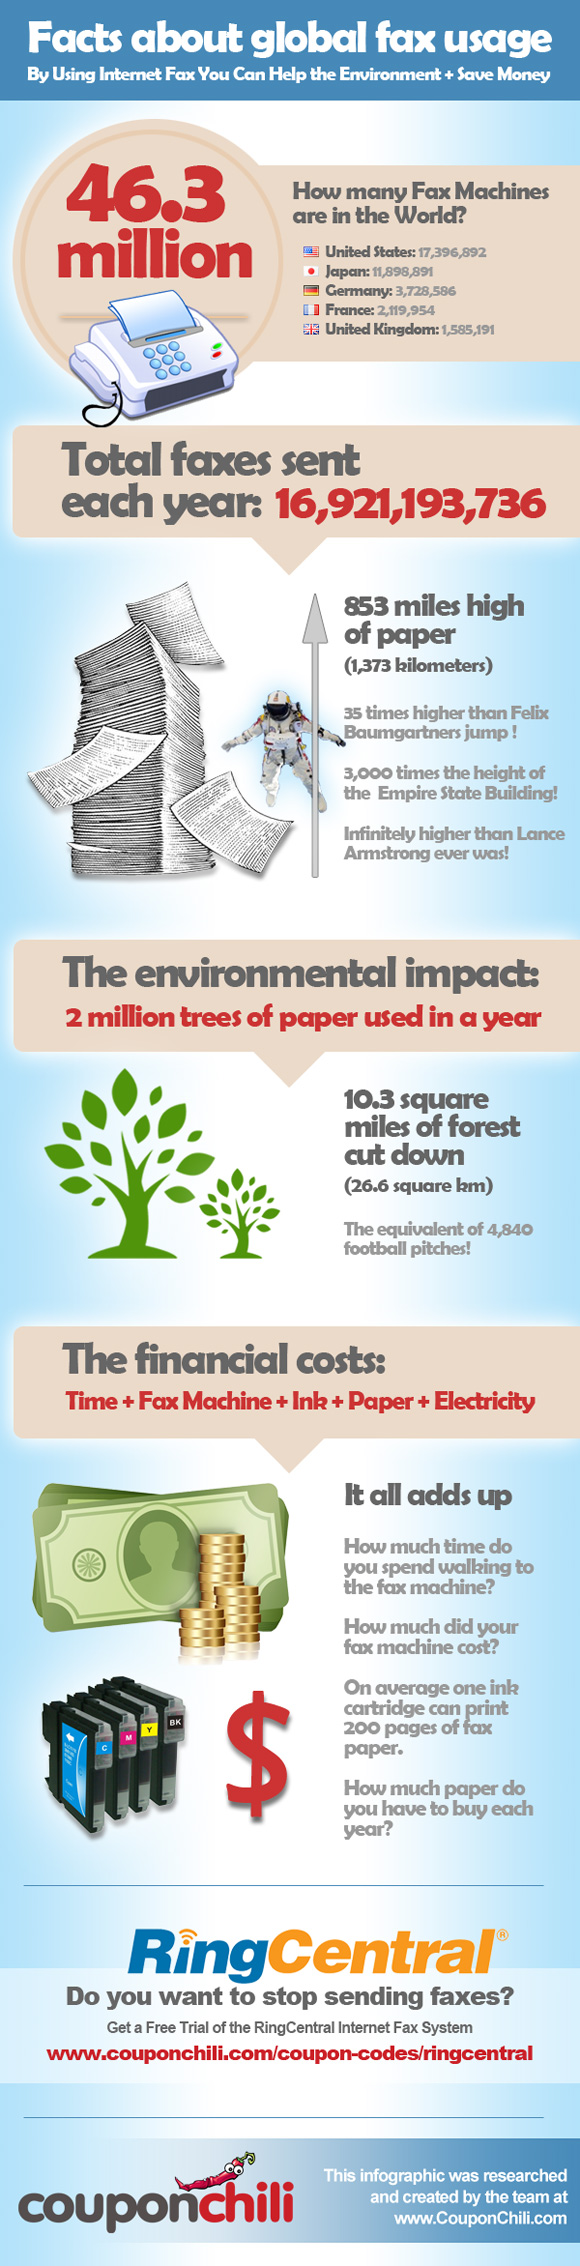 Infographic-Global-Fax-Usage